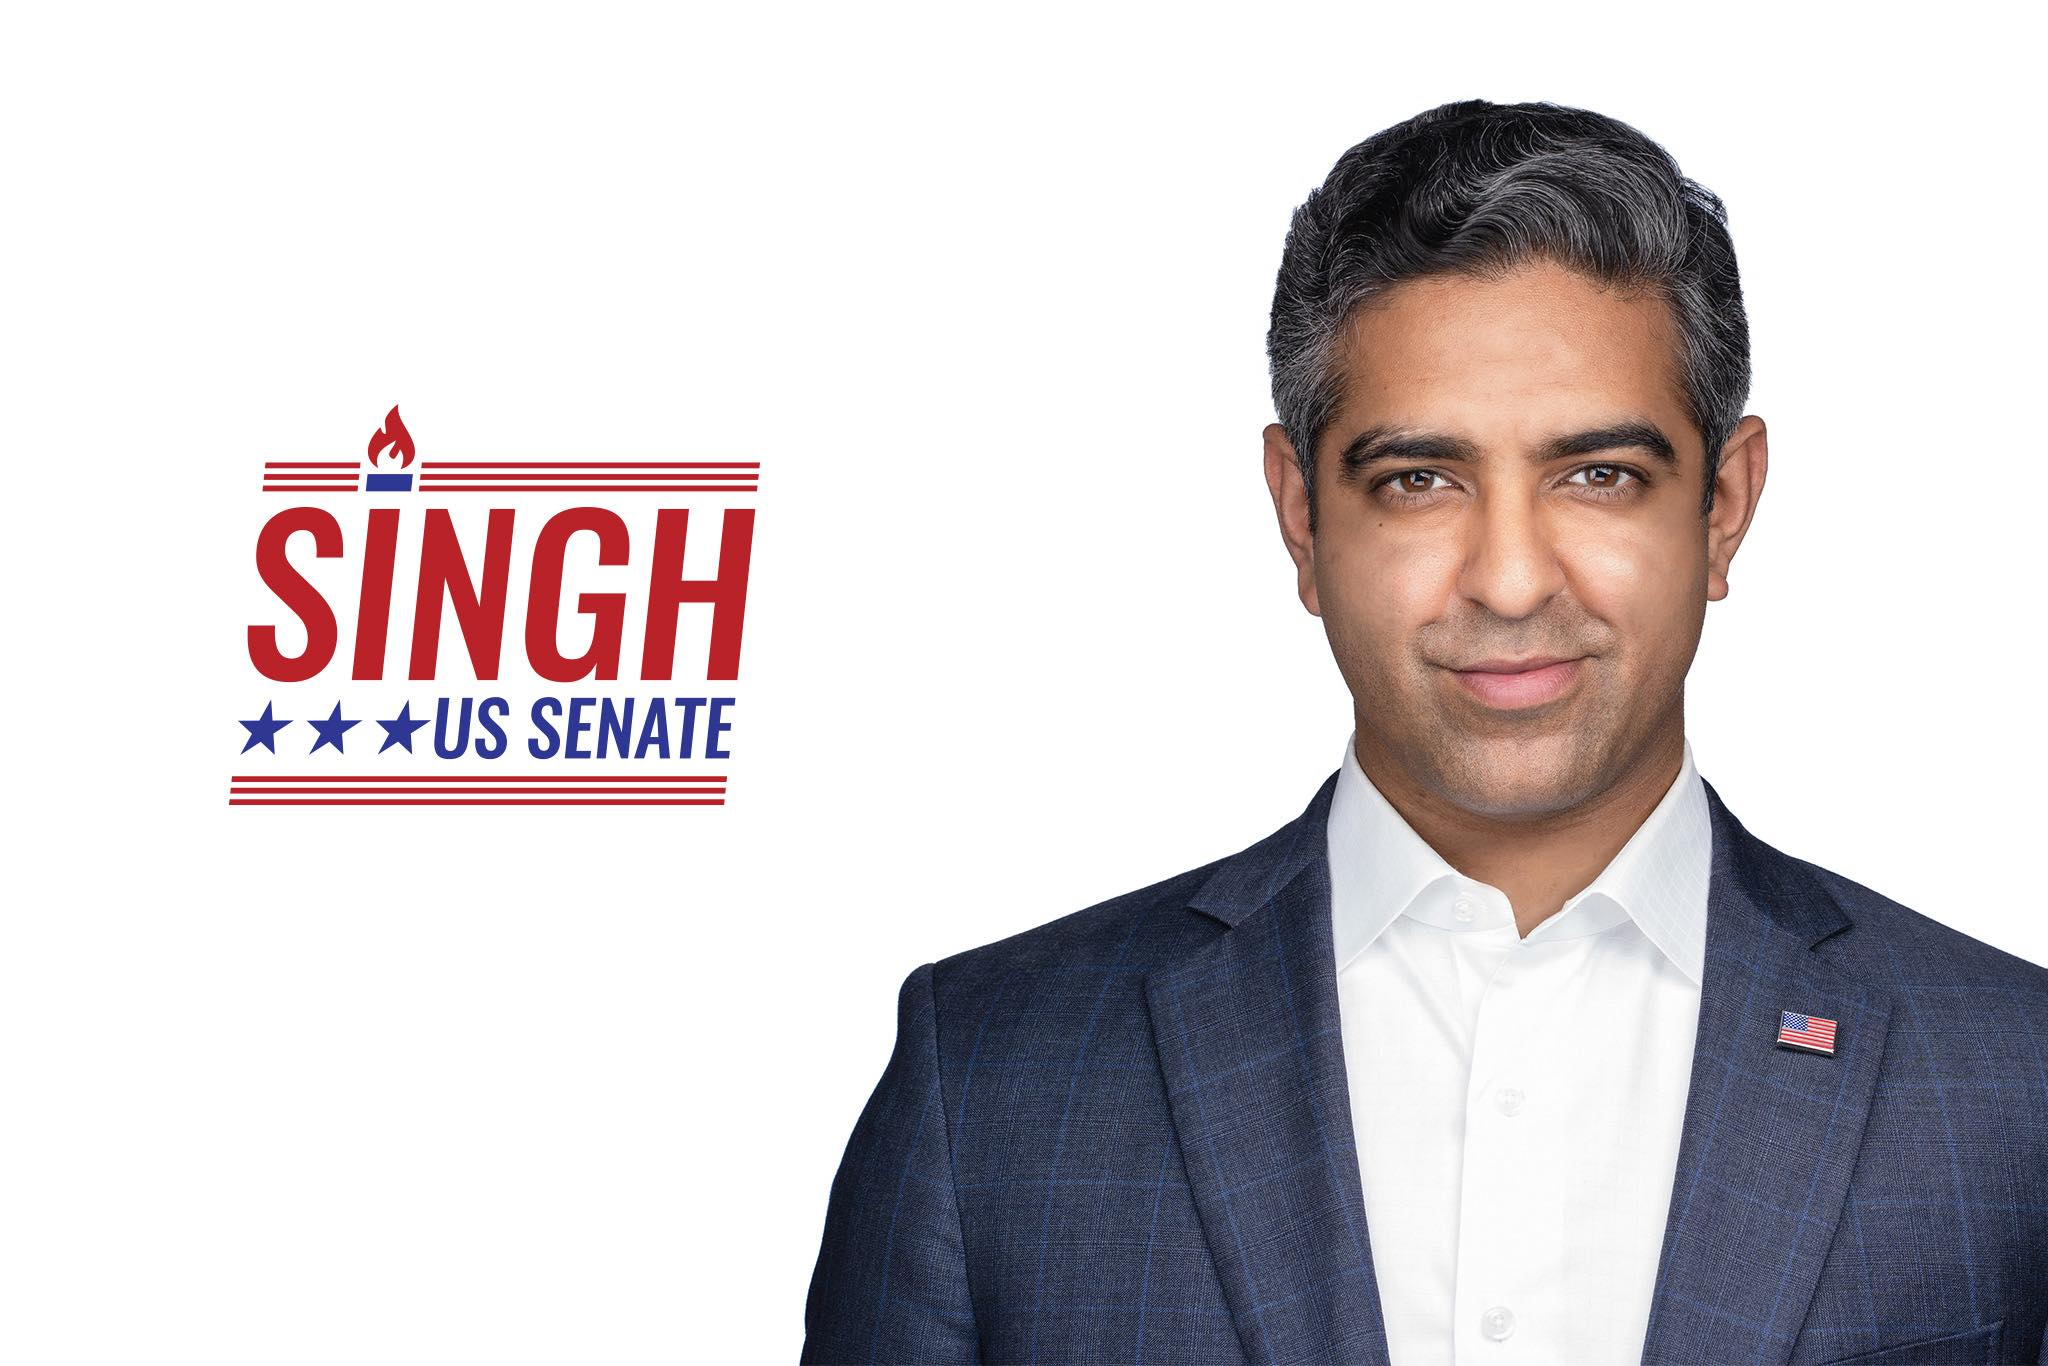 Singh for Senate